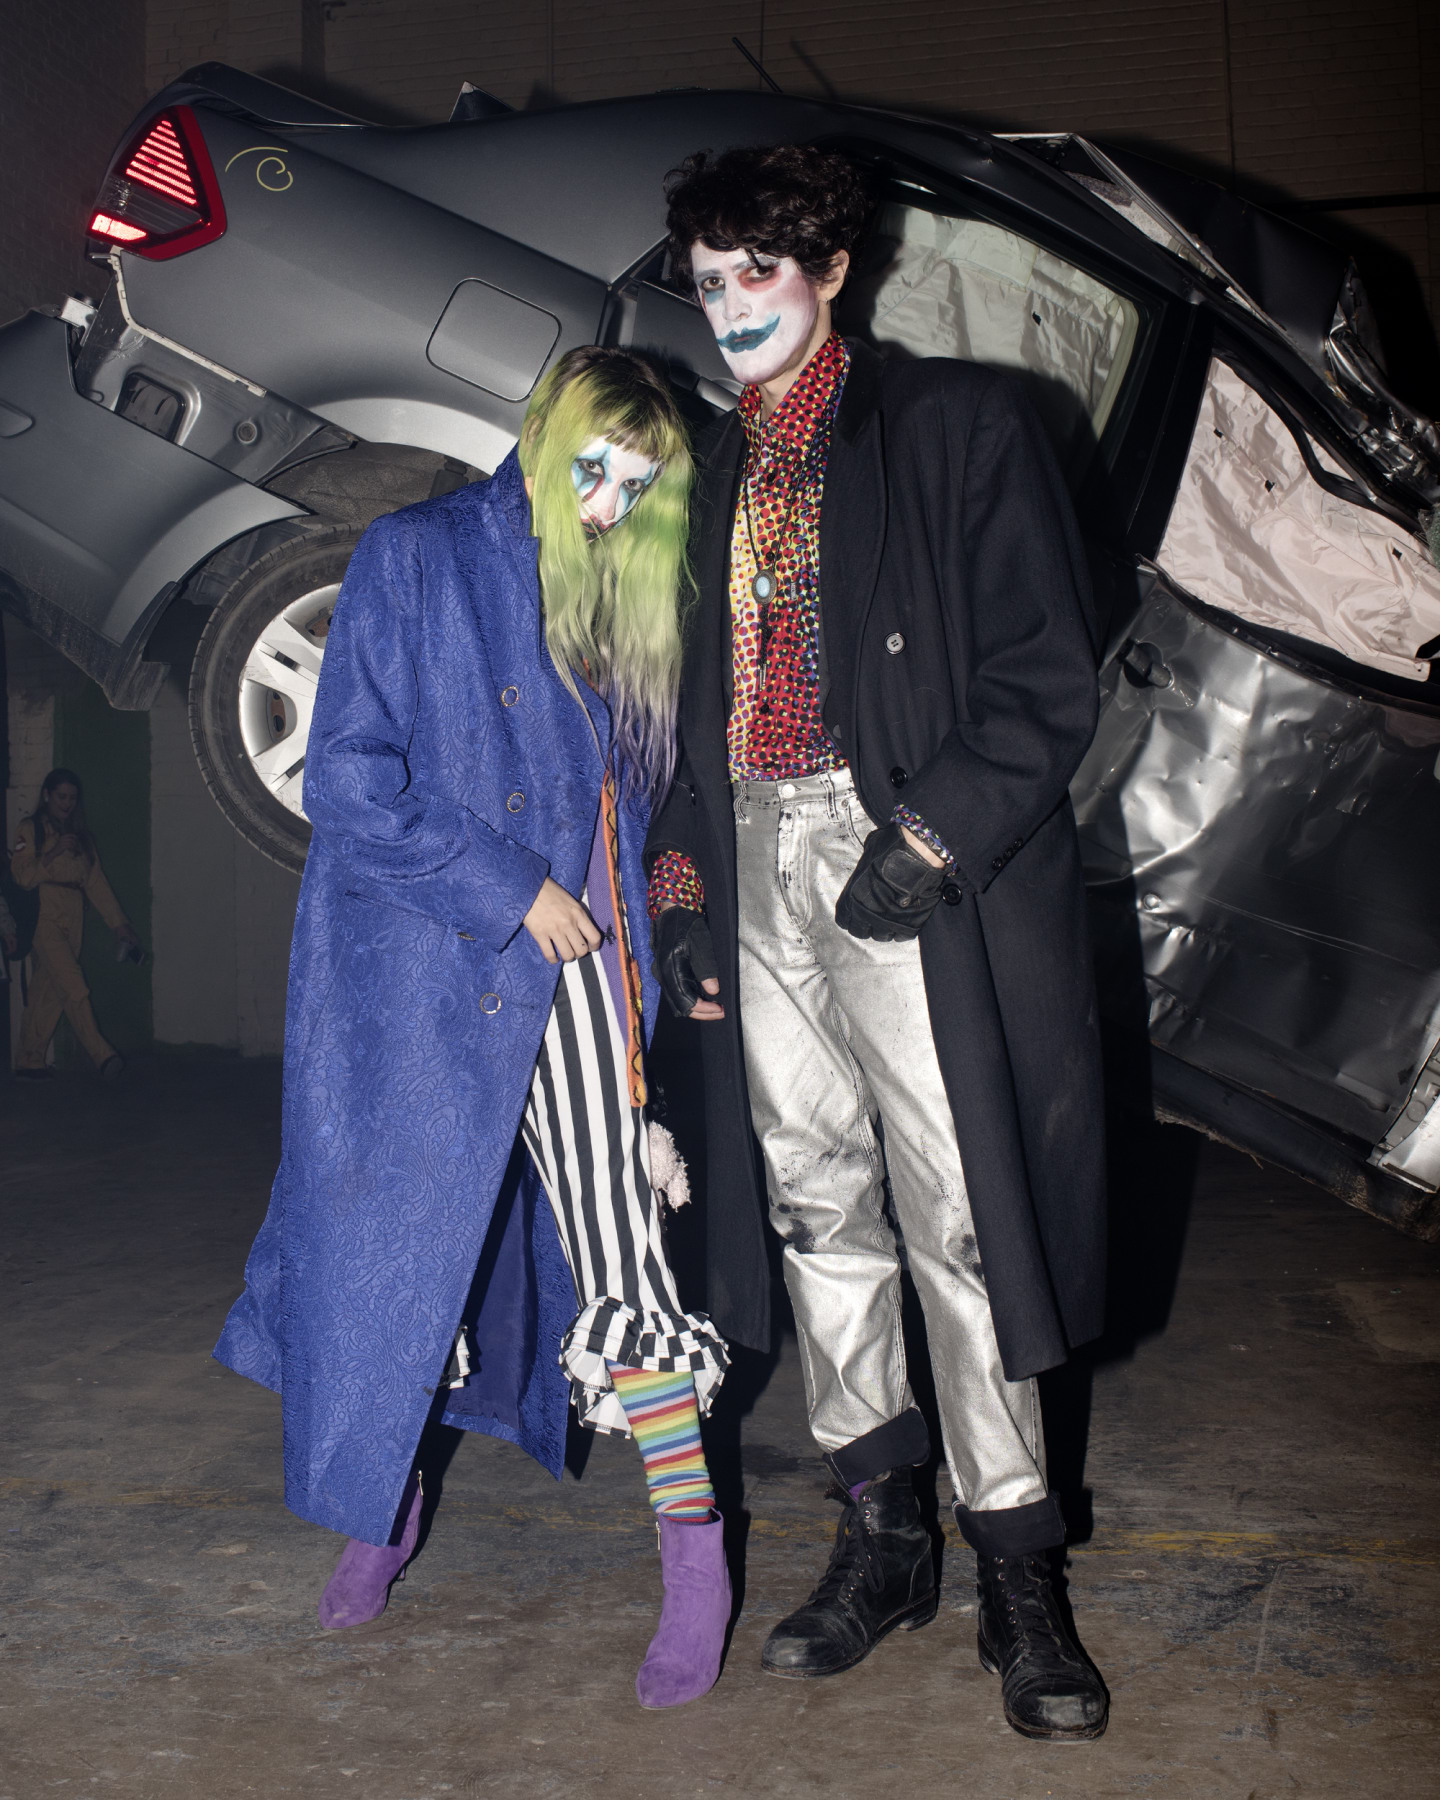 Halloween street style so good you'll wanna pull from these looks year-round